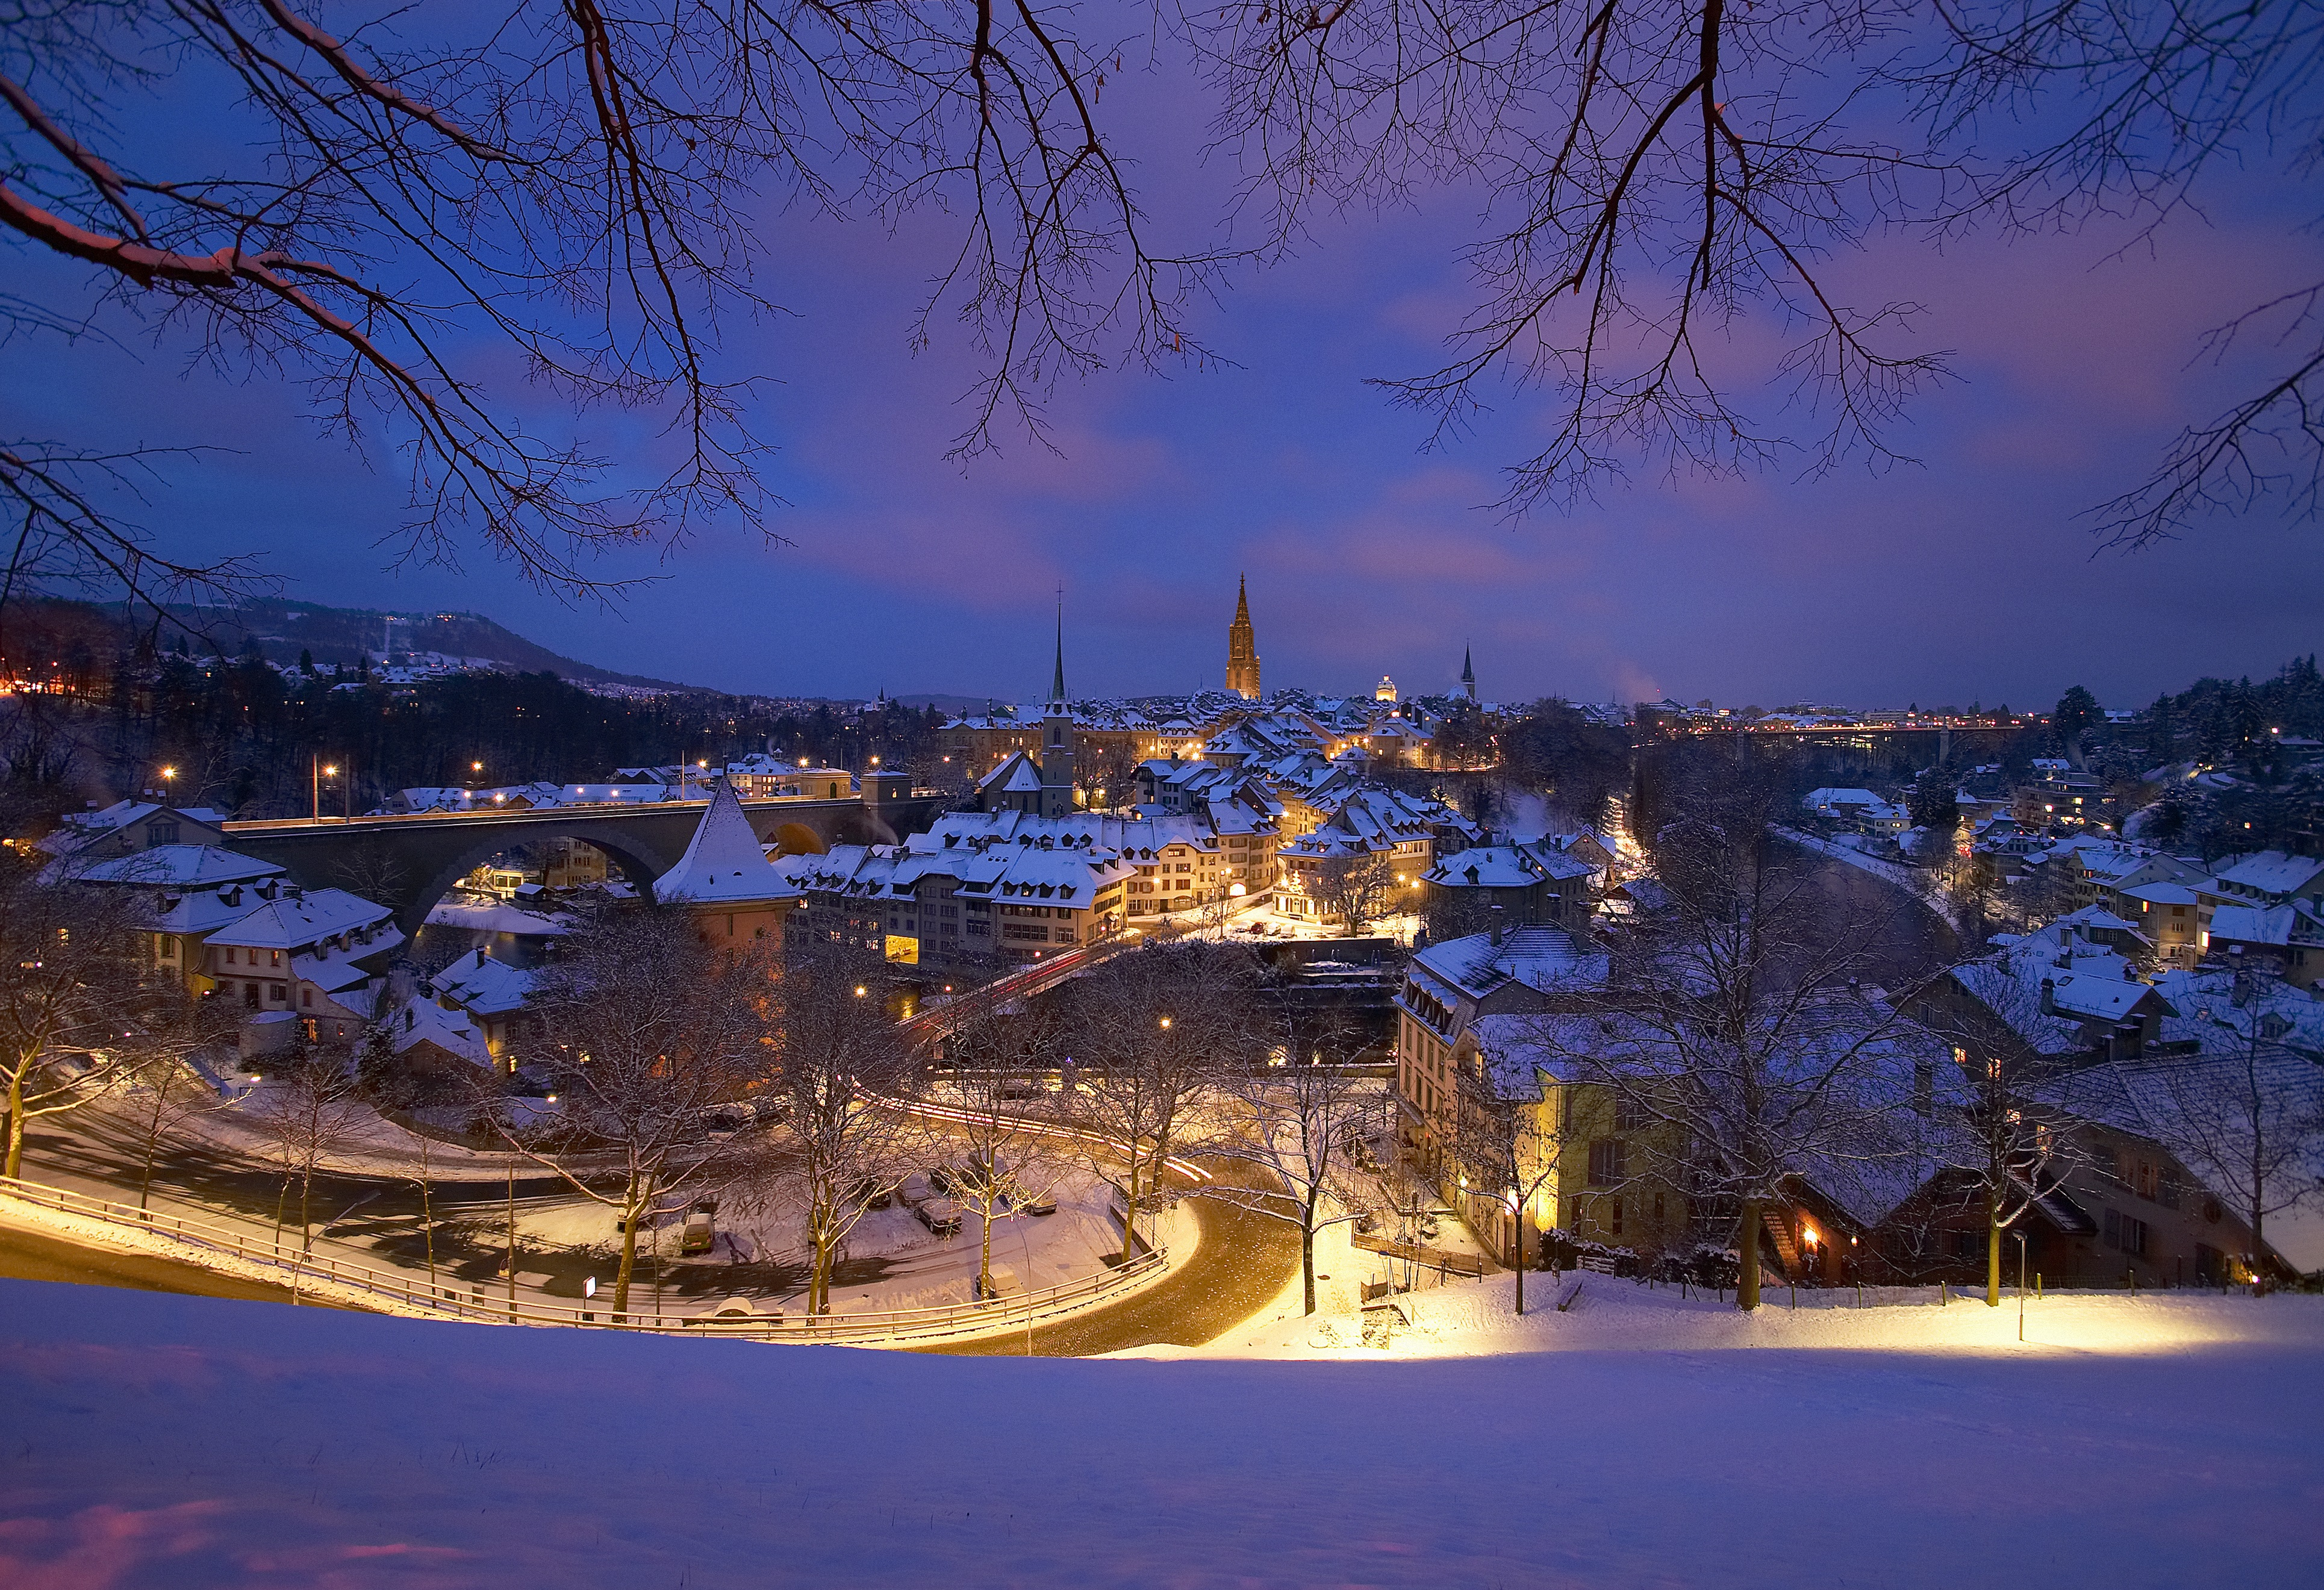 SEE & DO: OLD TOWN OF BERN - UNESCO